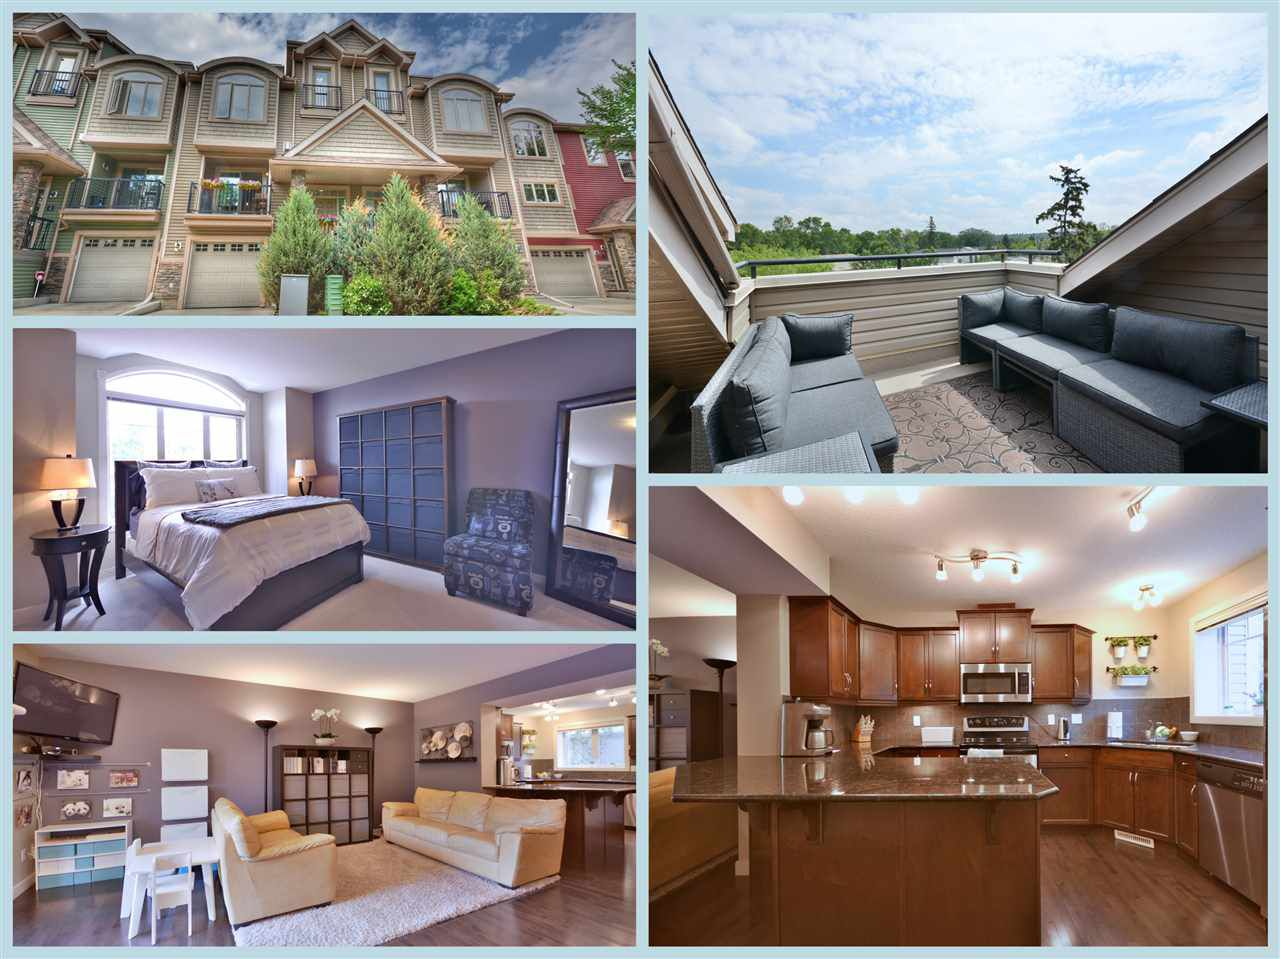 Main Photo: 5 10240 90 Street in Edmonton: Zone 13 Townhouse for sale : MLS®# E4141059